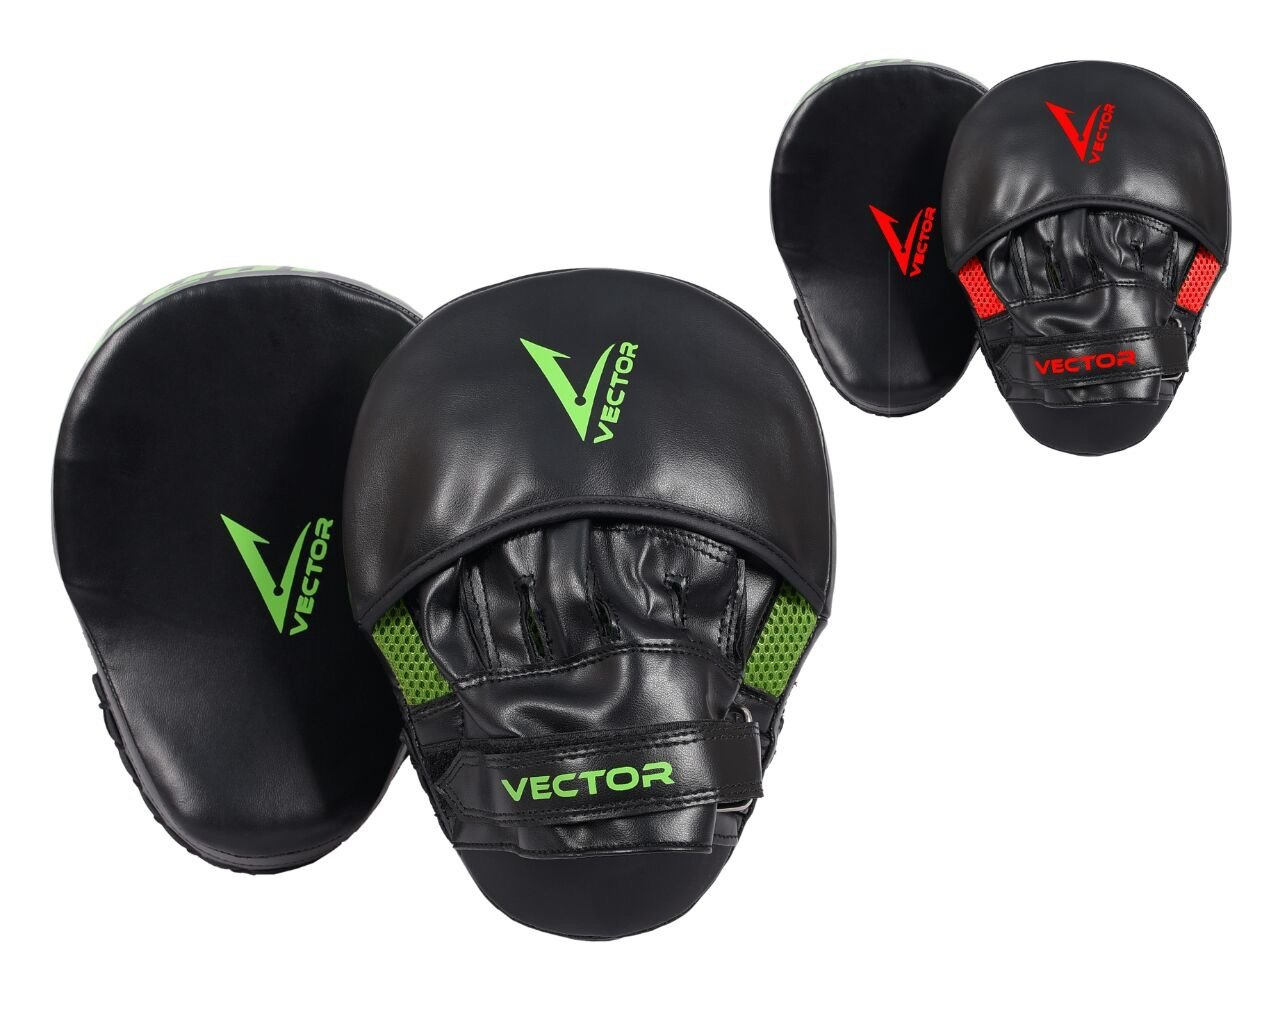 Vector Sports Maya Hide Leather Boxing Focus Pads MMA Punching Pads Kickboxing Training Gloves with Wrist Support (Red) by Vector Sports